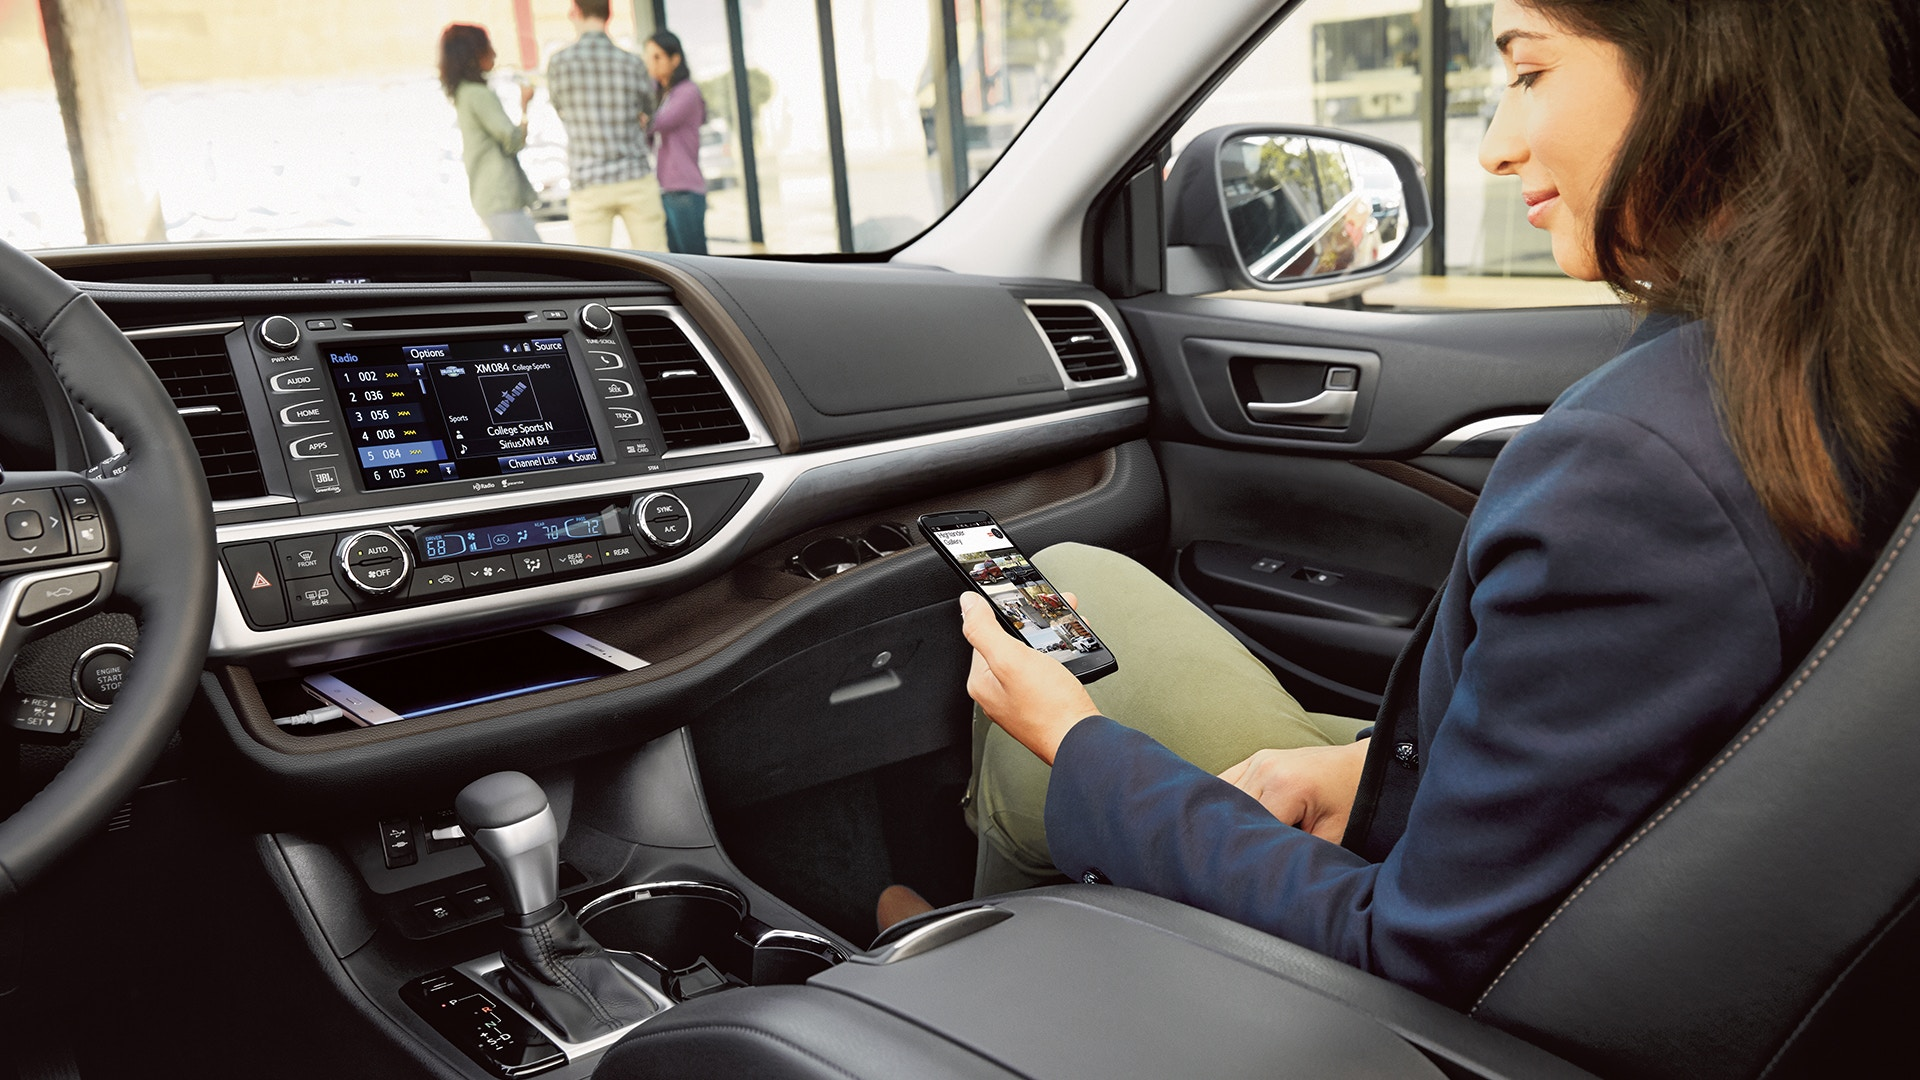 2019 Toyota Highlander Center Console